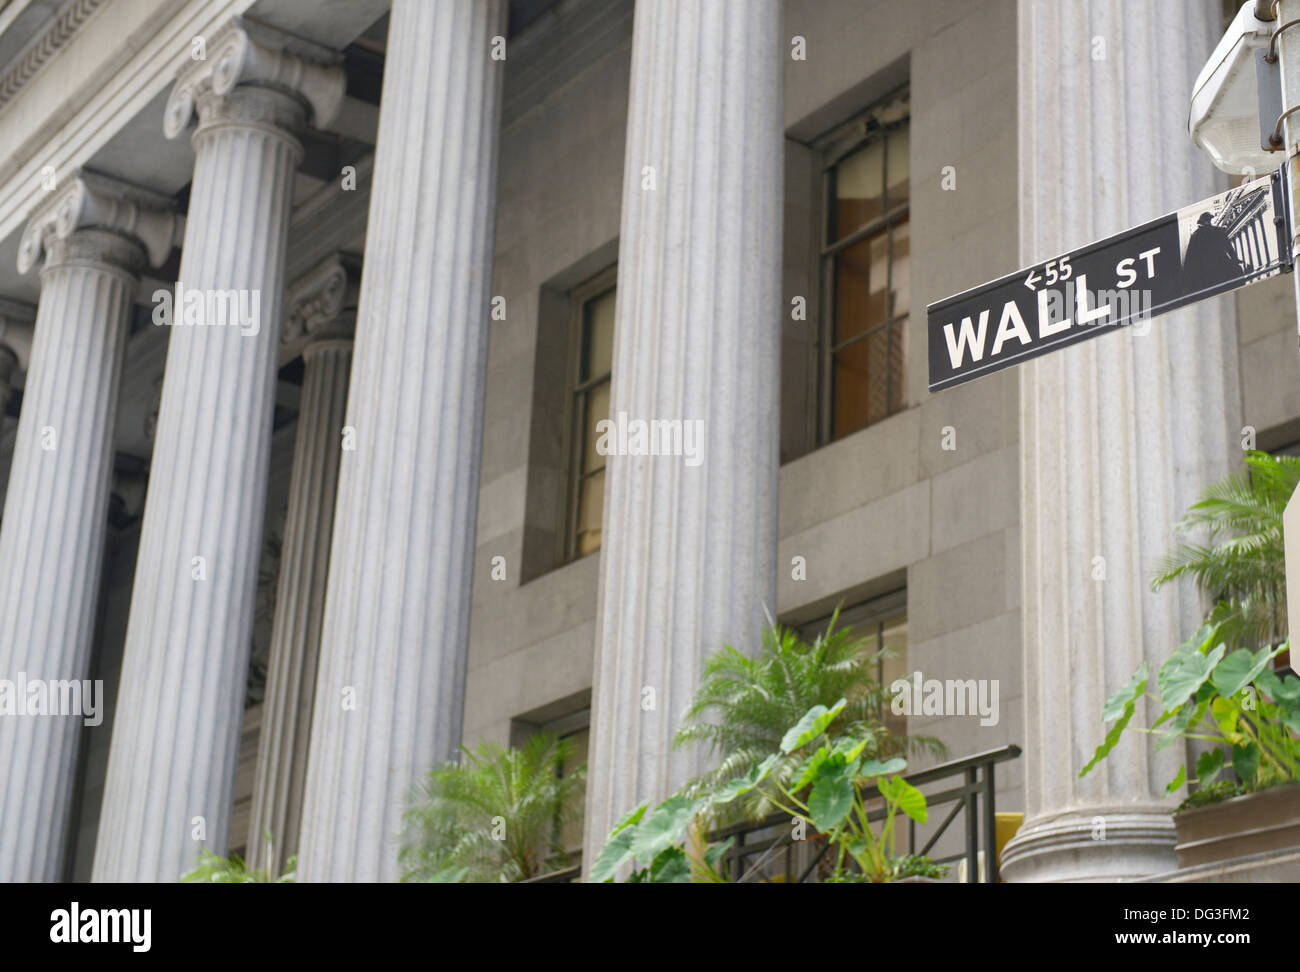 55 Wall Street - Stock Image